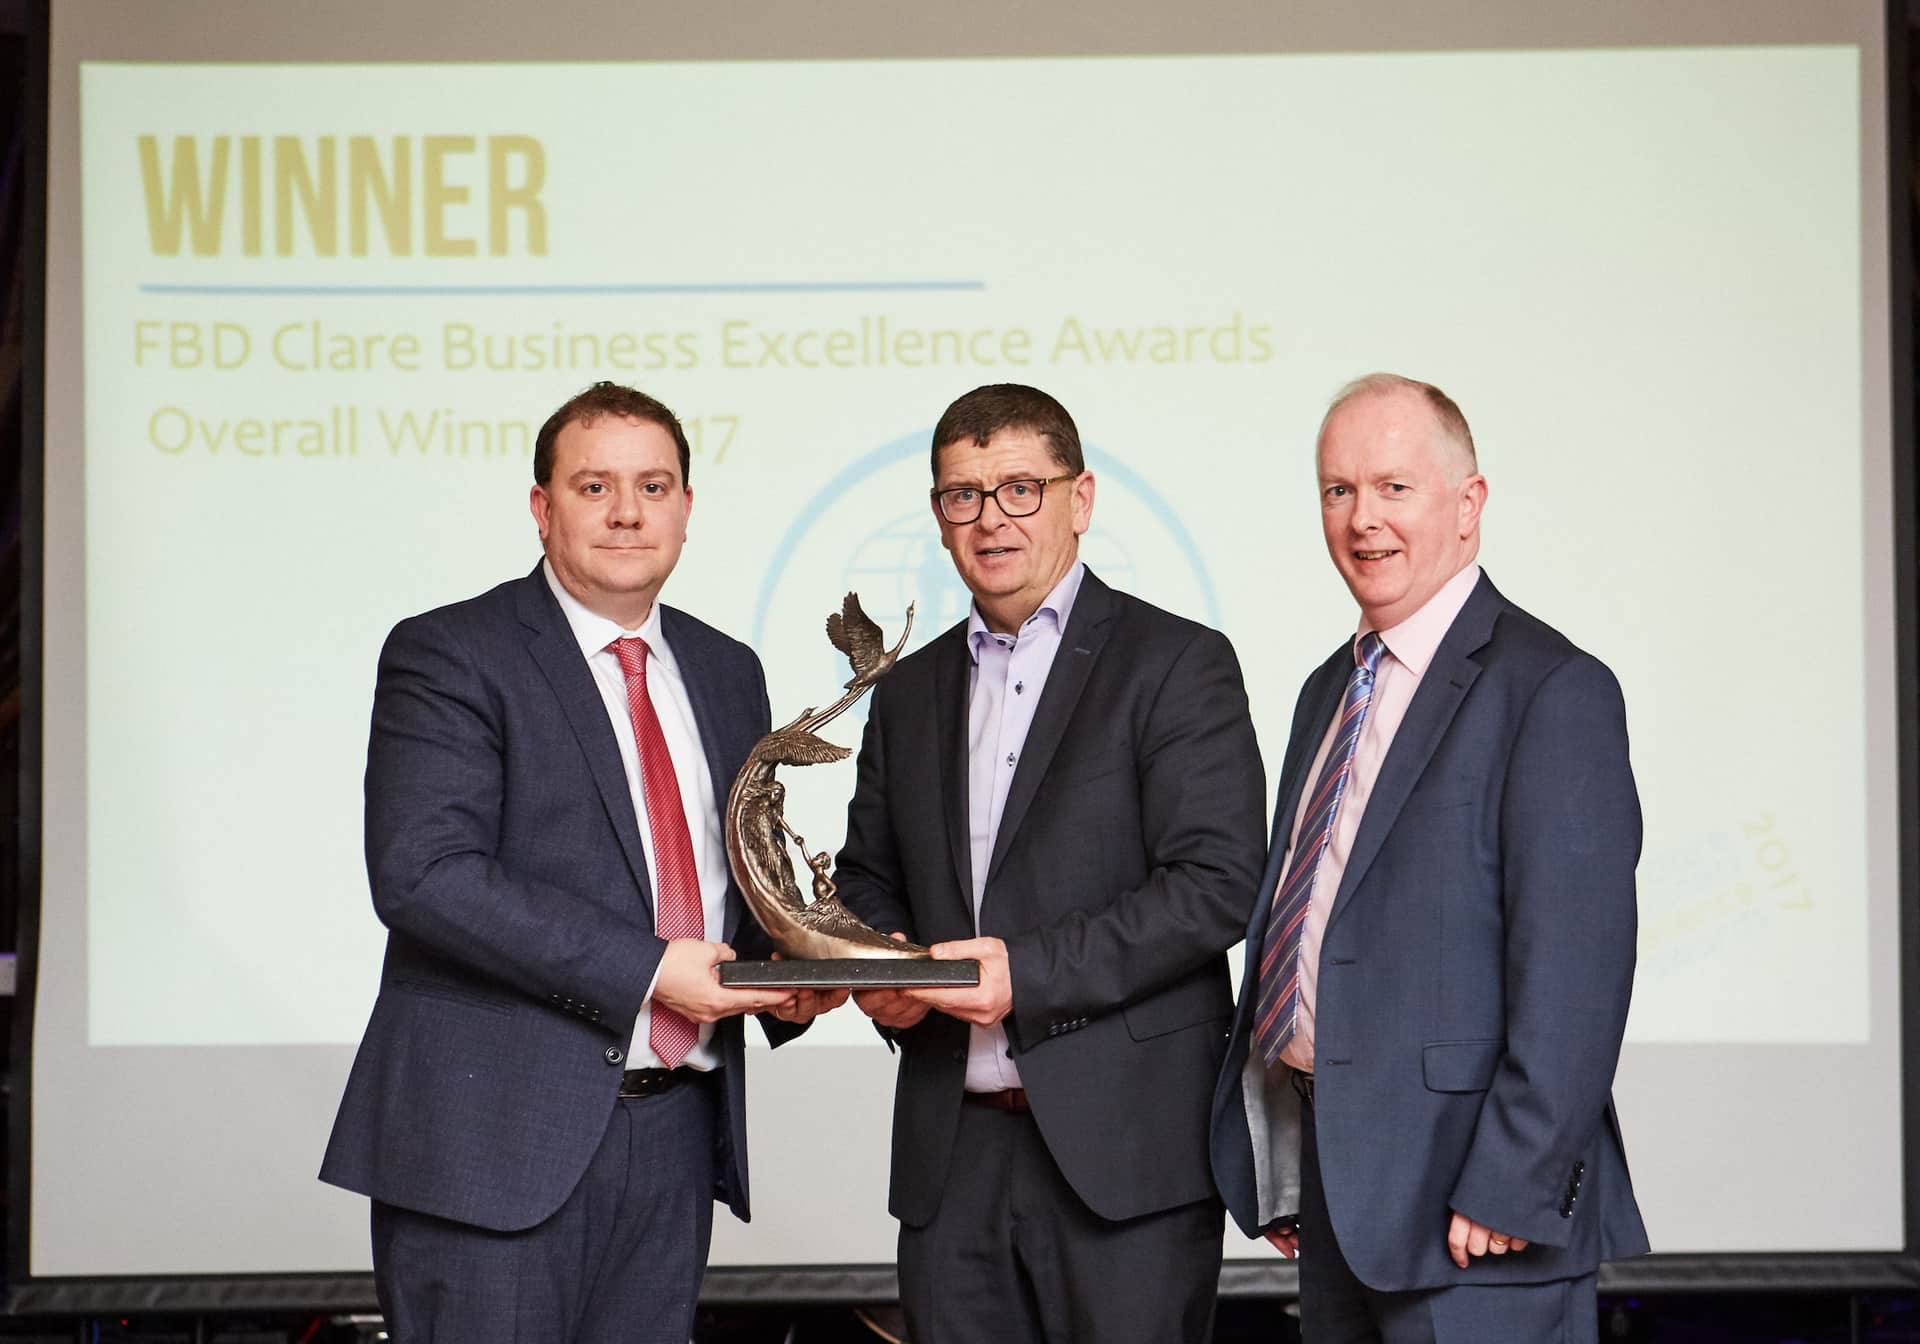 William Cahir President Ennis Chamber of Commerce, Louis Fay General Manager St Francis Credit Union (overall winner) and Mike Byrne MD of Acton BV. Photo: Mike Mulcaire